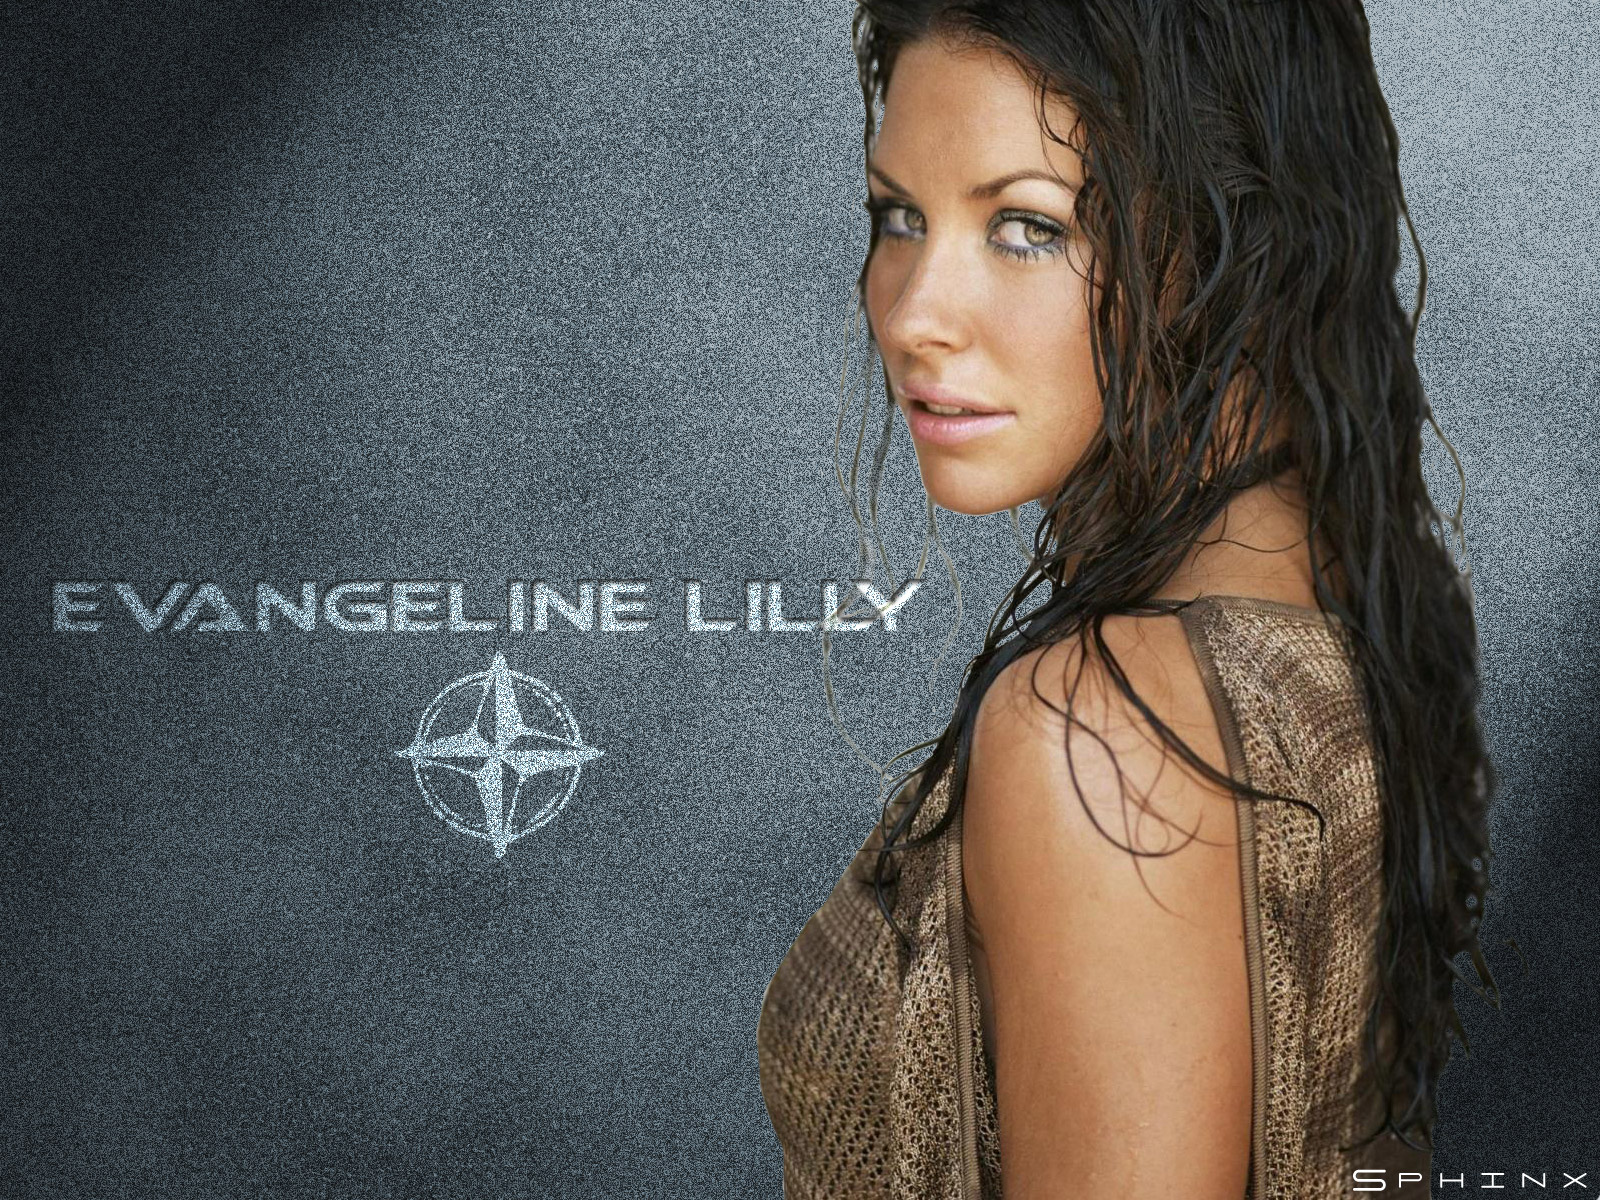 Evangeline lilly Wallpapers Photos images Evangeline lilly pictures 1600x1200